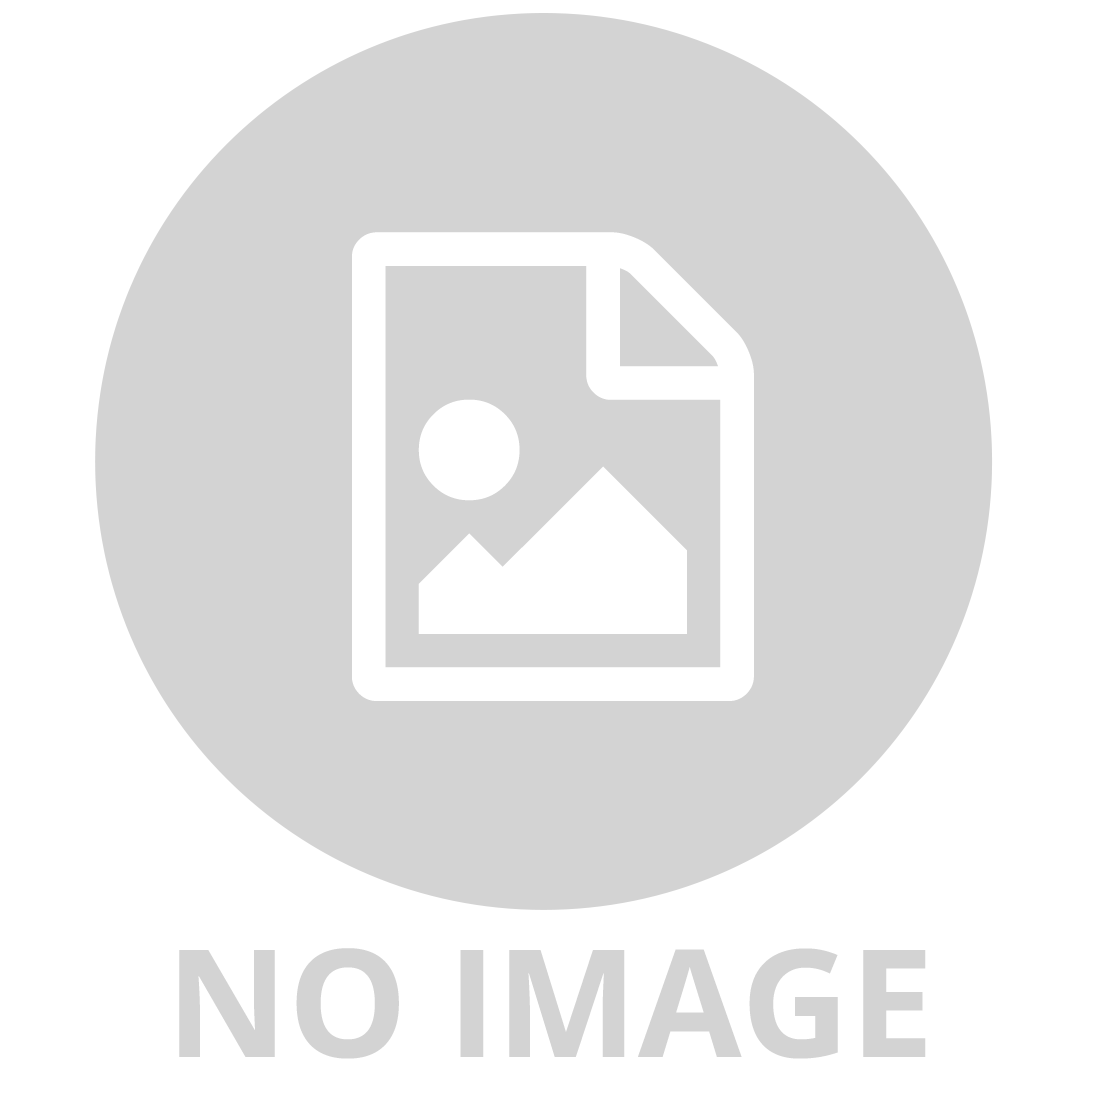 JOHN DEERE 1:64 CONSTRUCTION VEHICLE ASSORTMENT